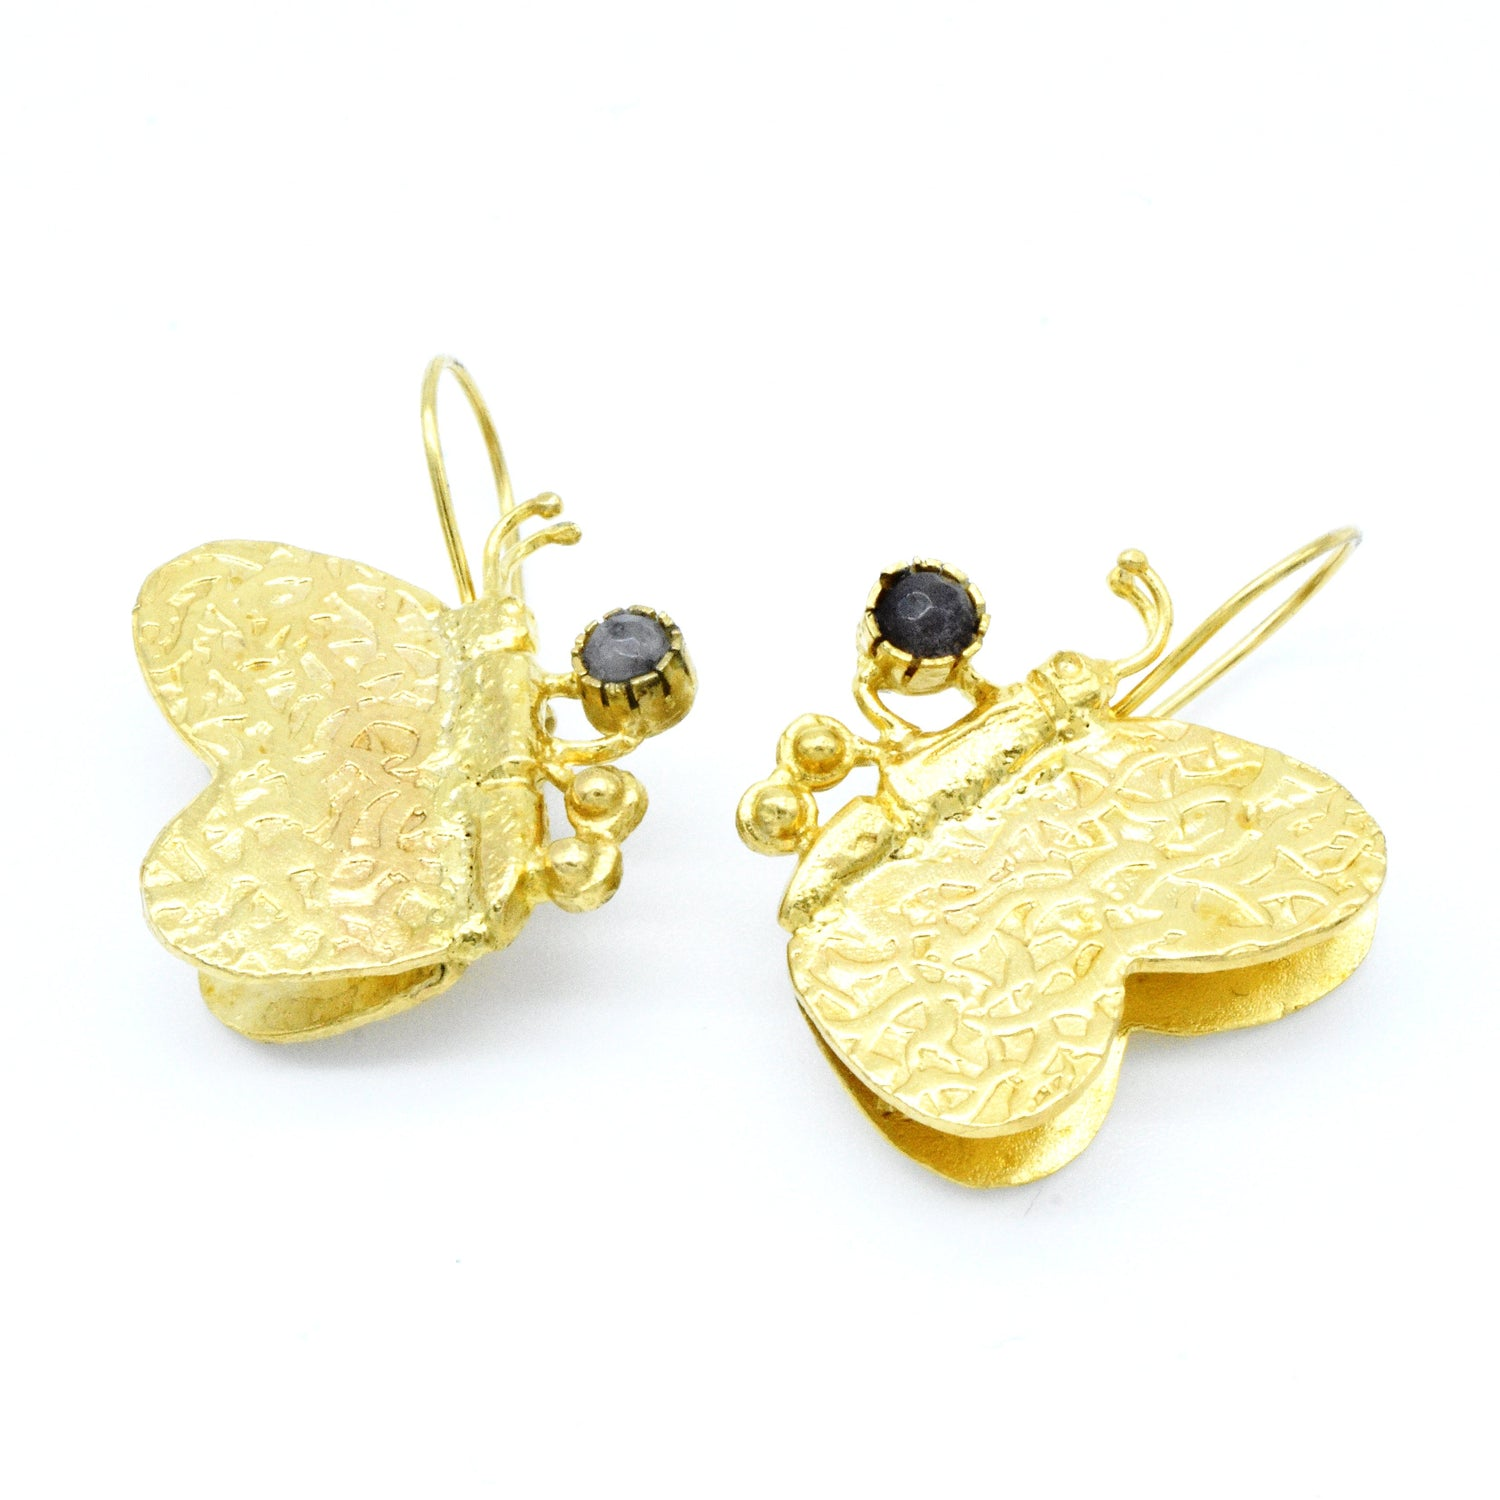 Aylas Agate Butterfly earrings - 21ct Gold plated semi precious gemstone - Handmade in Ottoman Style by Artisan